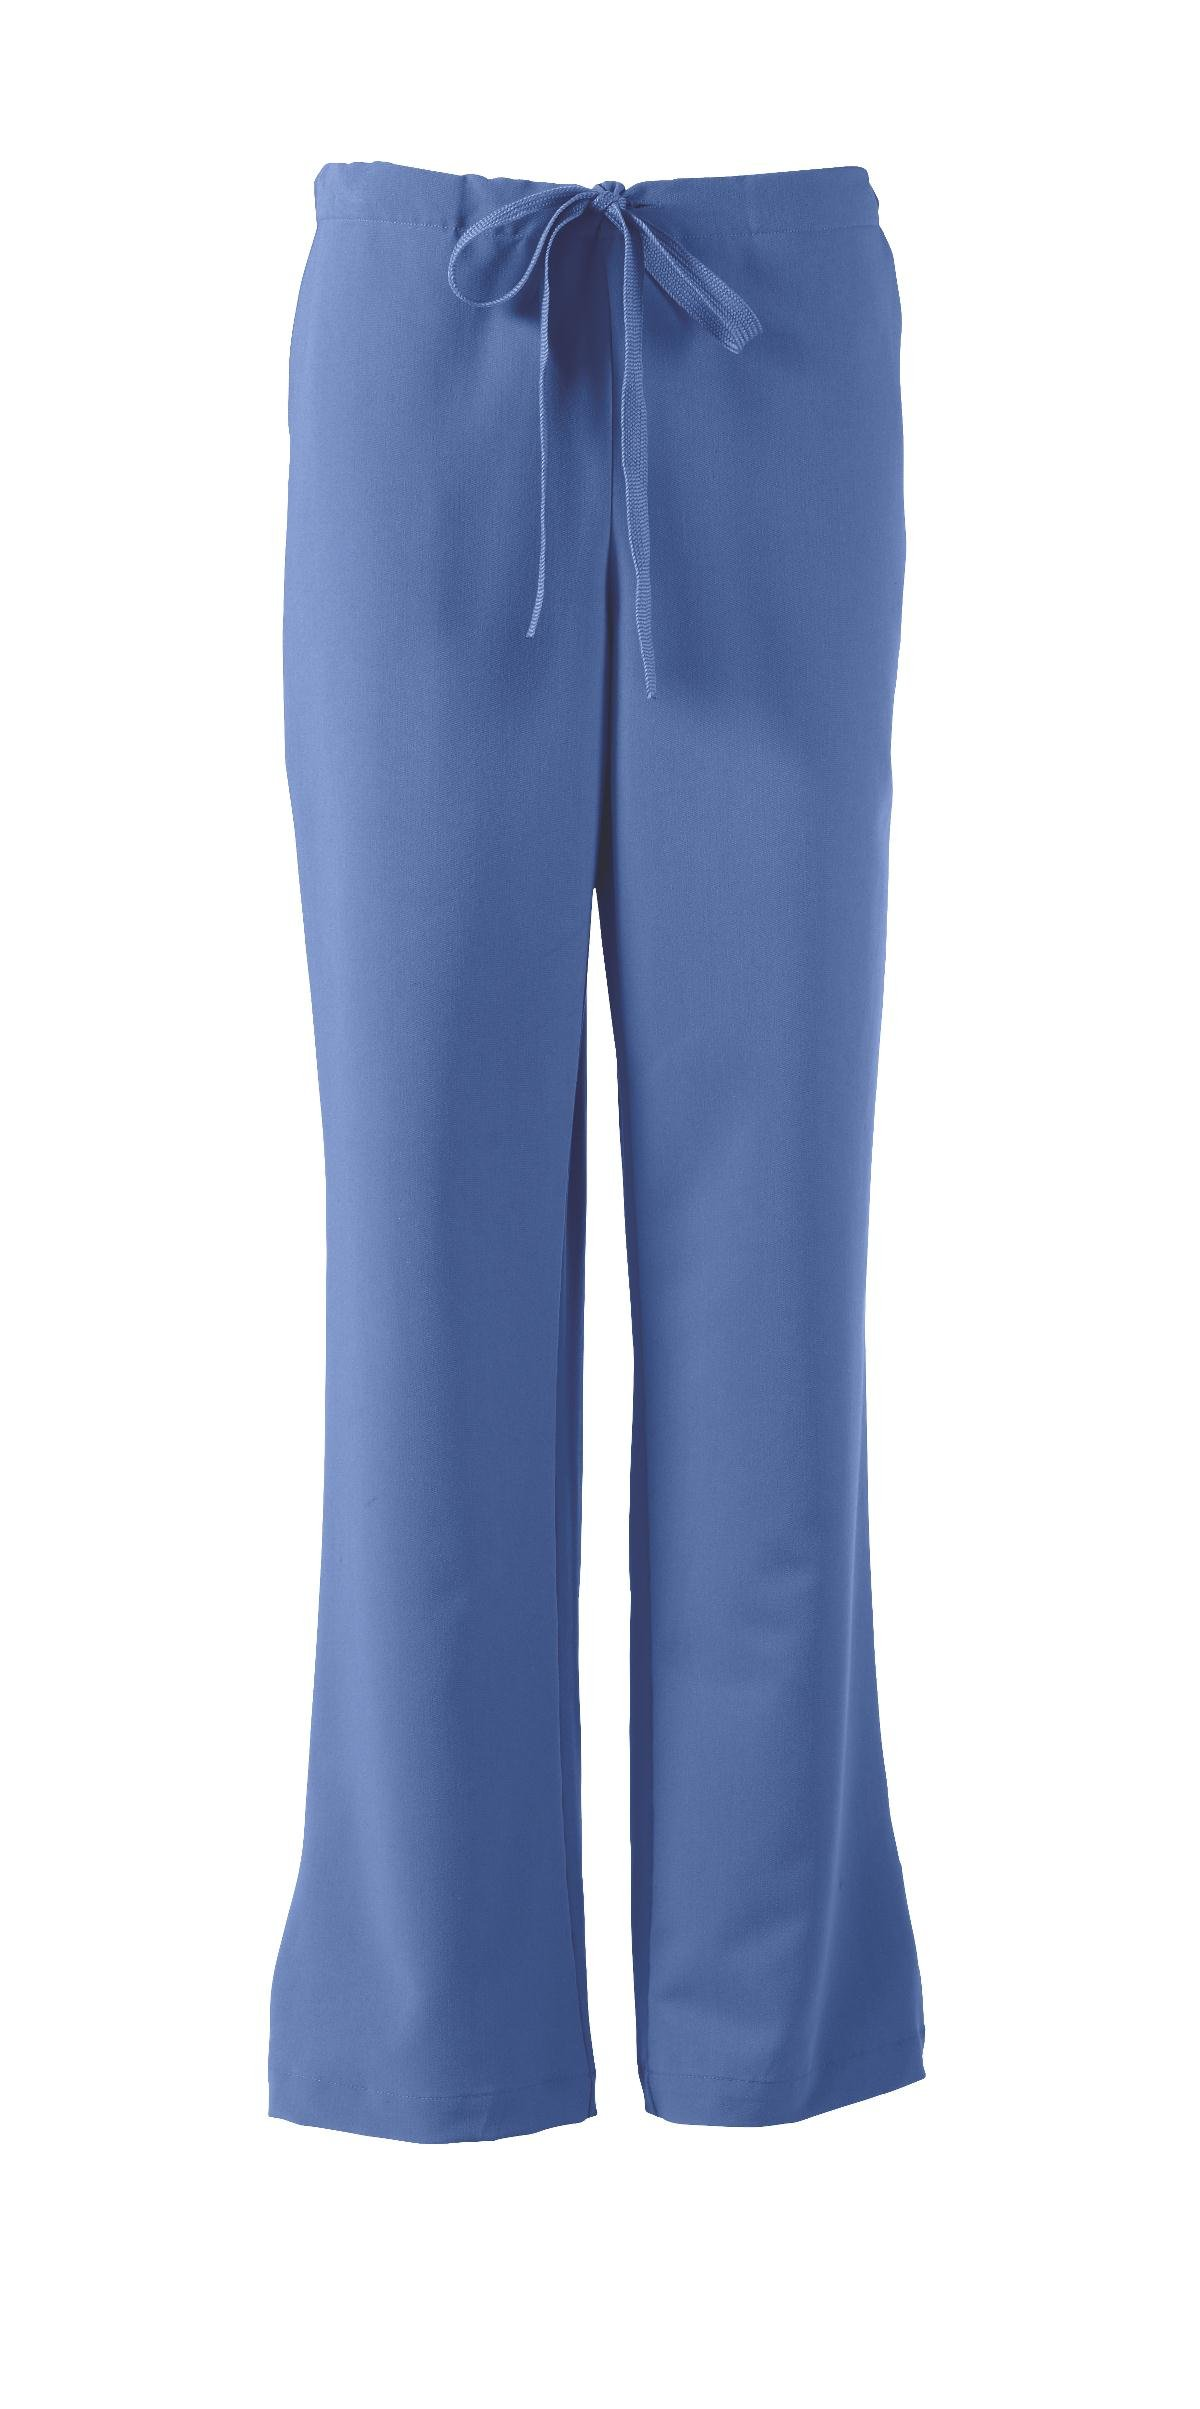 ave Women's Medical Scrub Pants, Melrose ave, Bootcut Style, Drawstring and Elastic Waist, Great for Nurses, Ceil Blue, 2X-Large Tall